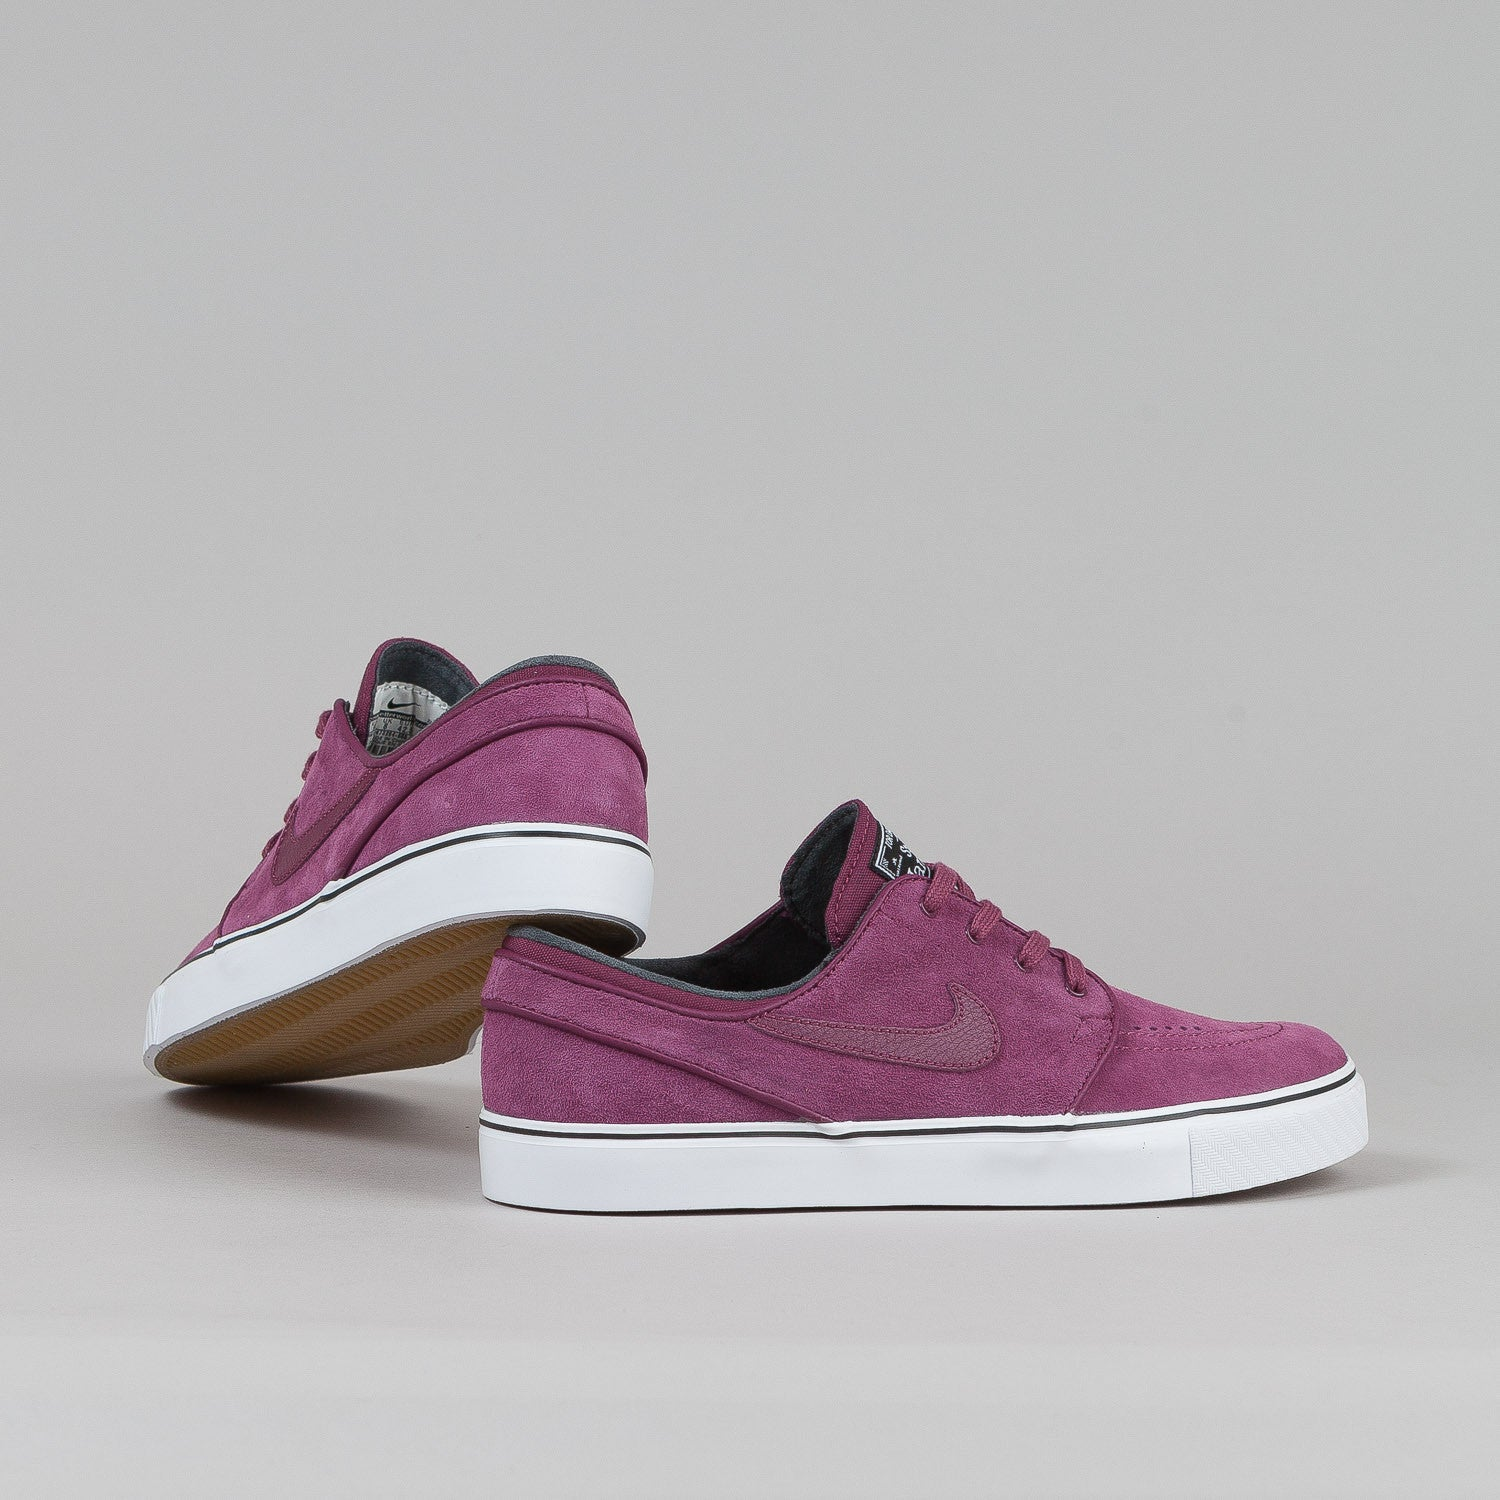 Nike SB Stefan Janoski SE Shoes Villain Red / Villain Red - Black - White